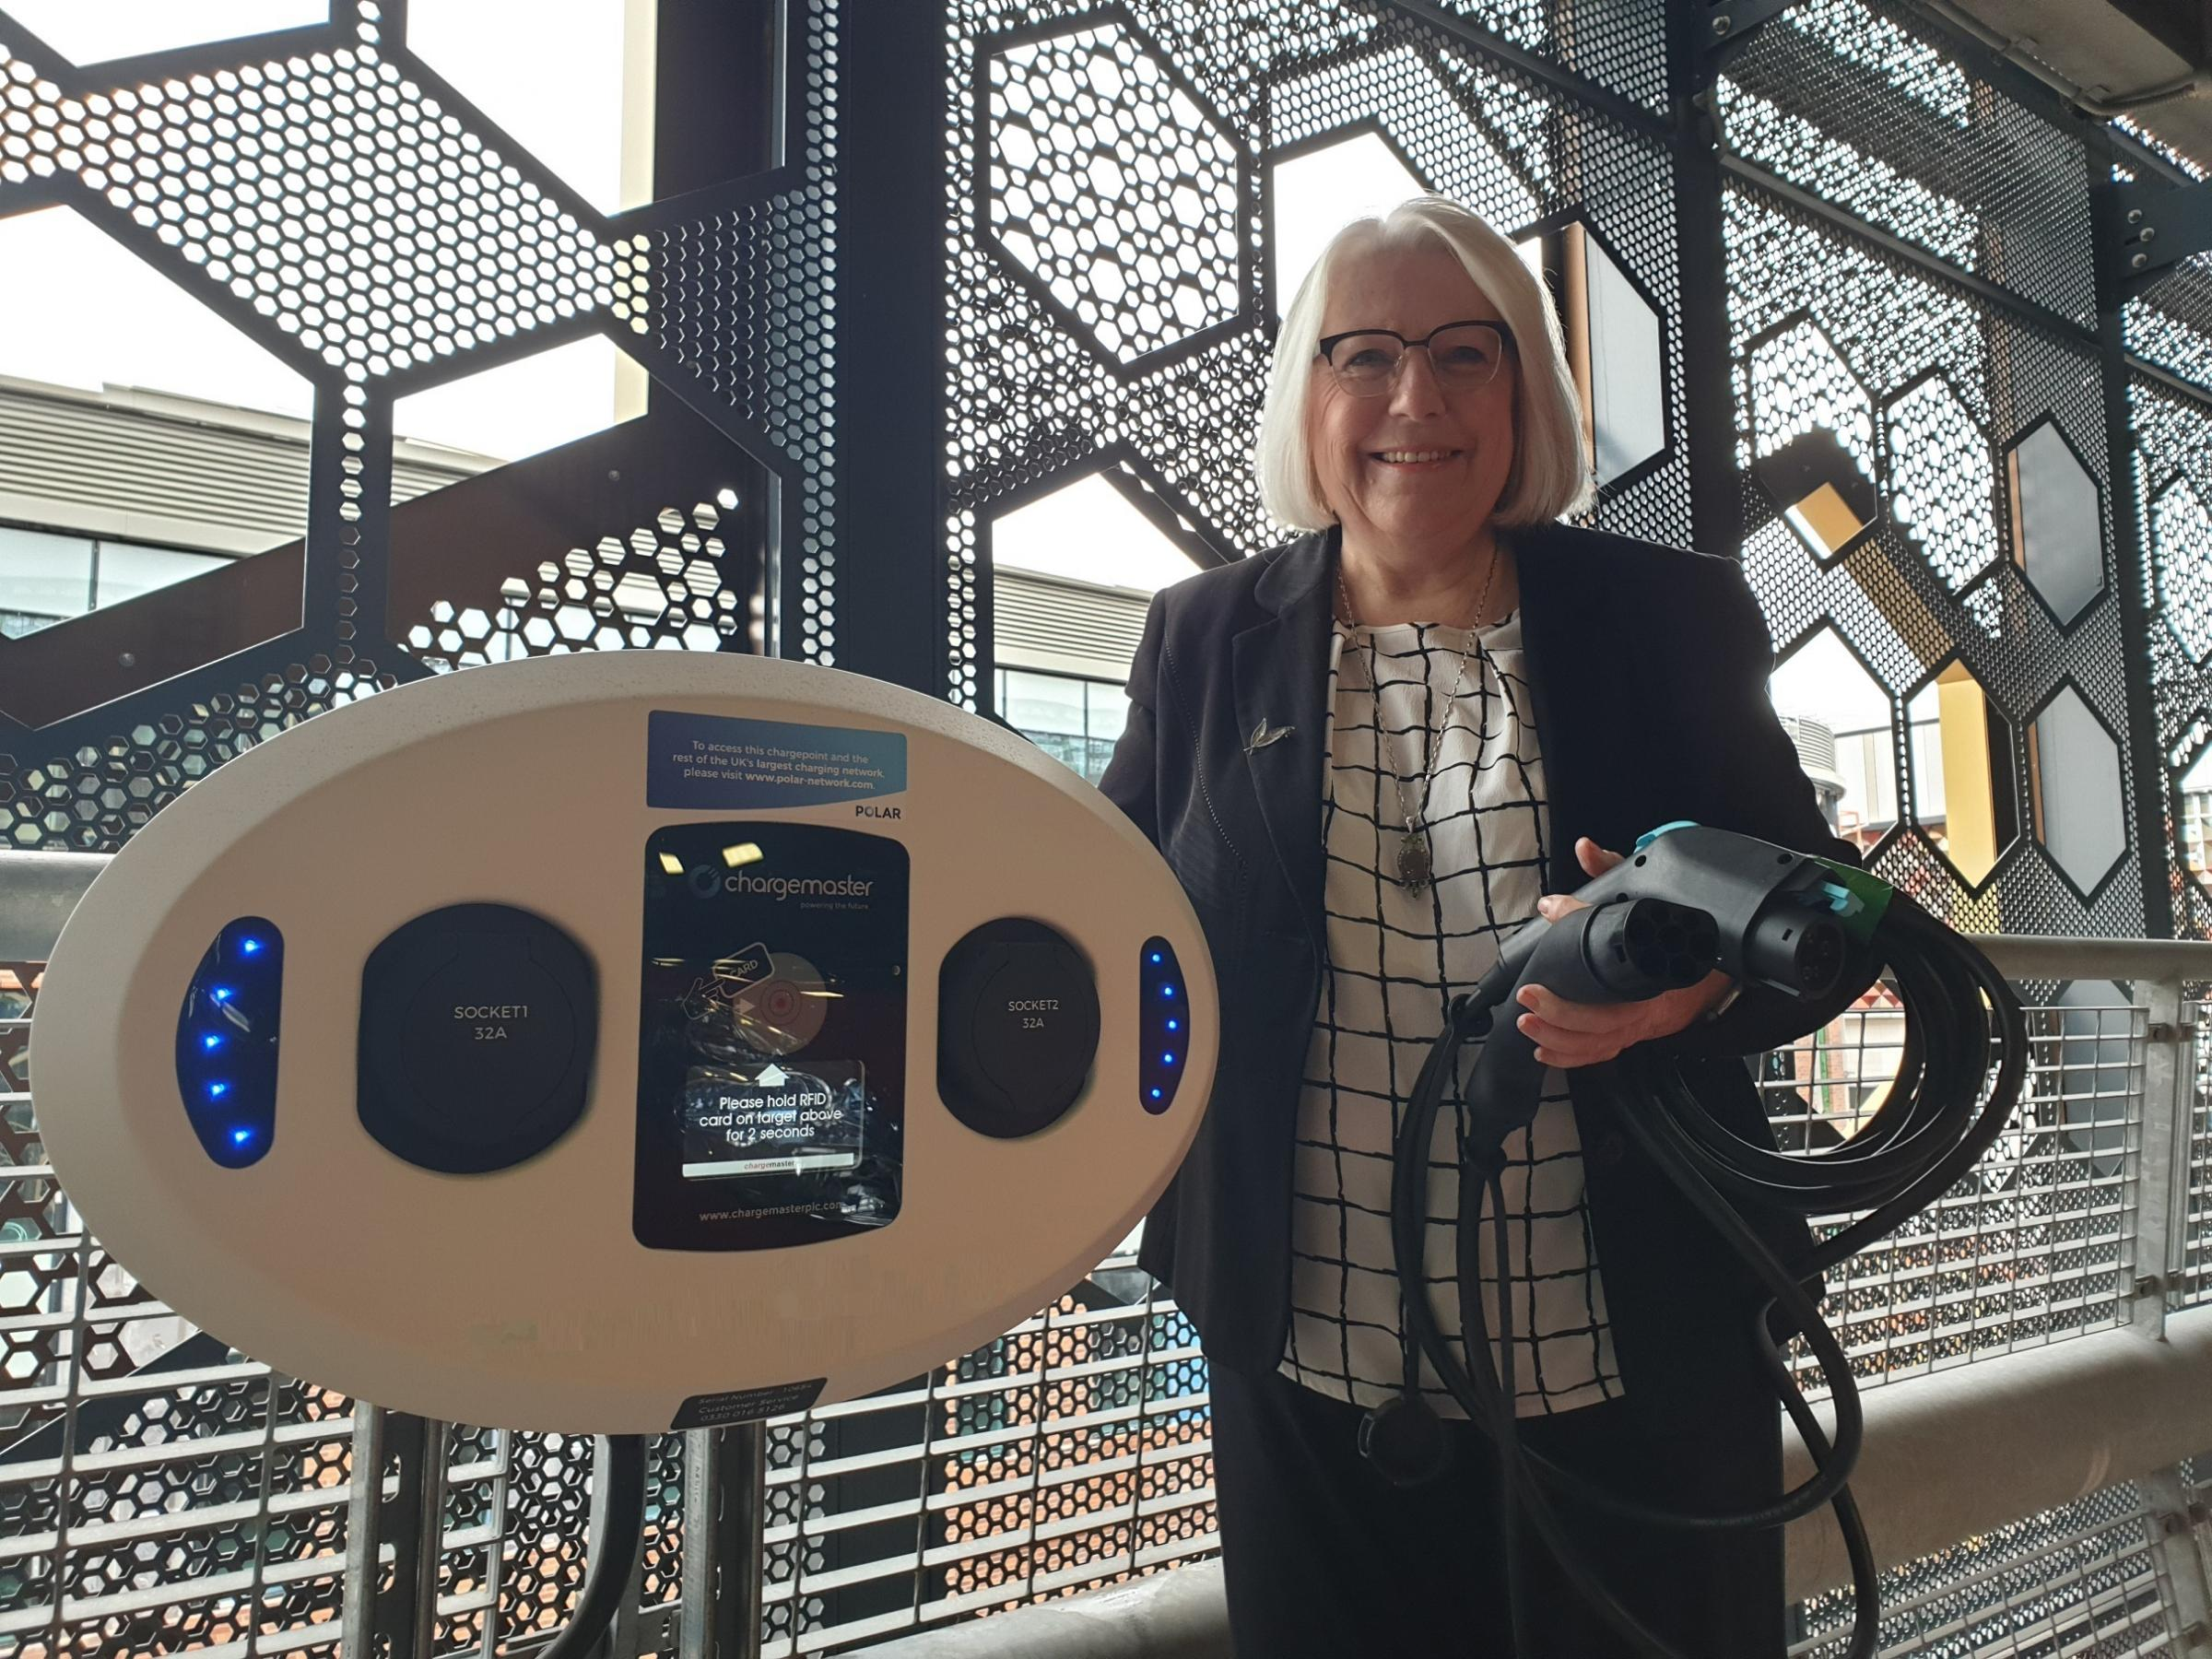 Council support Clean Air Day with new electric charging points in Time Square